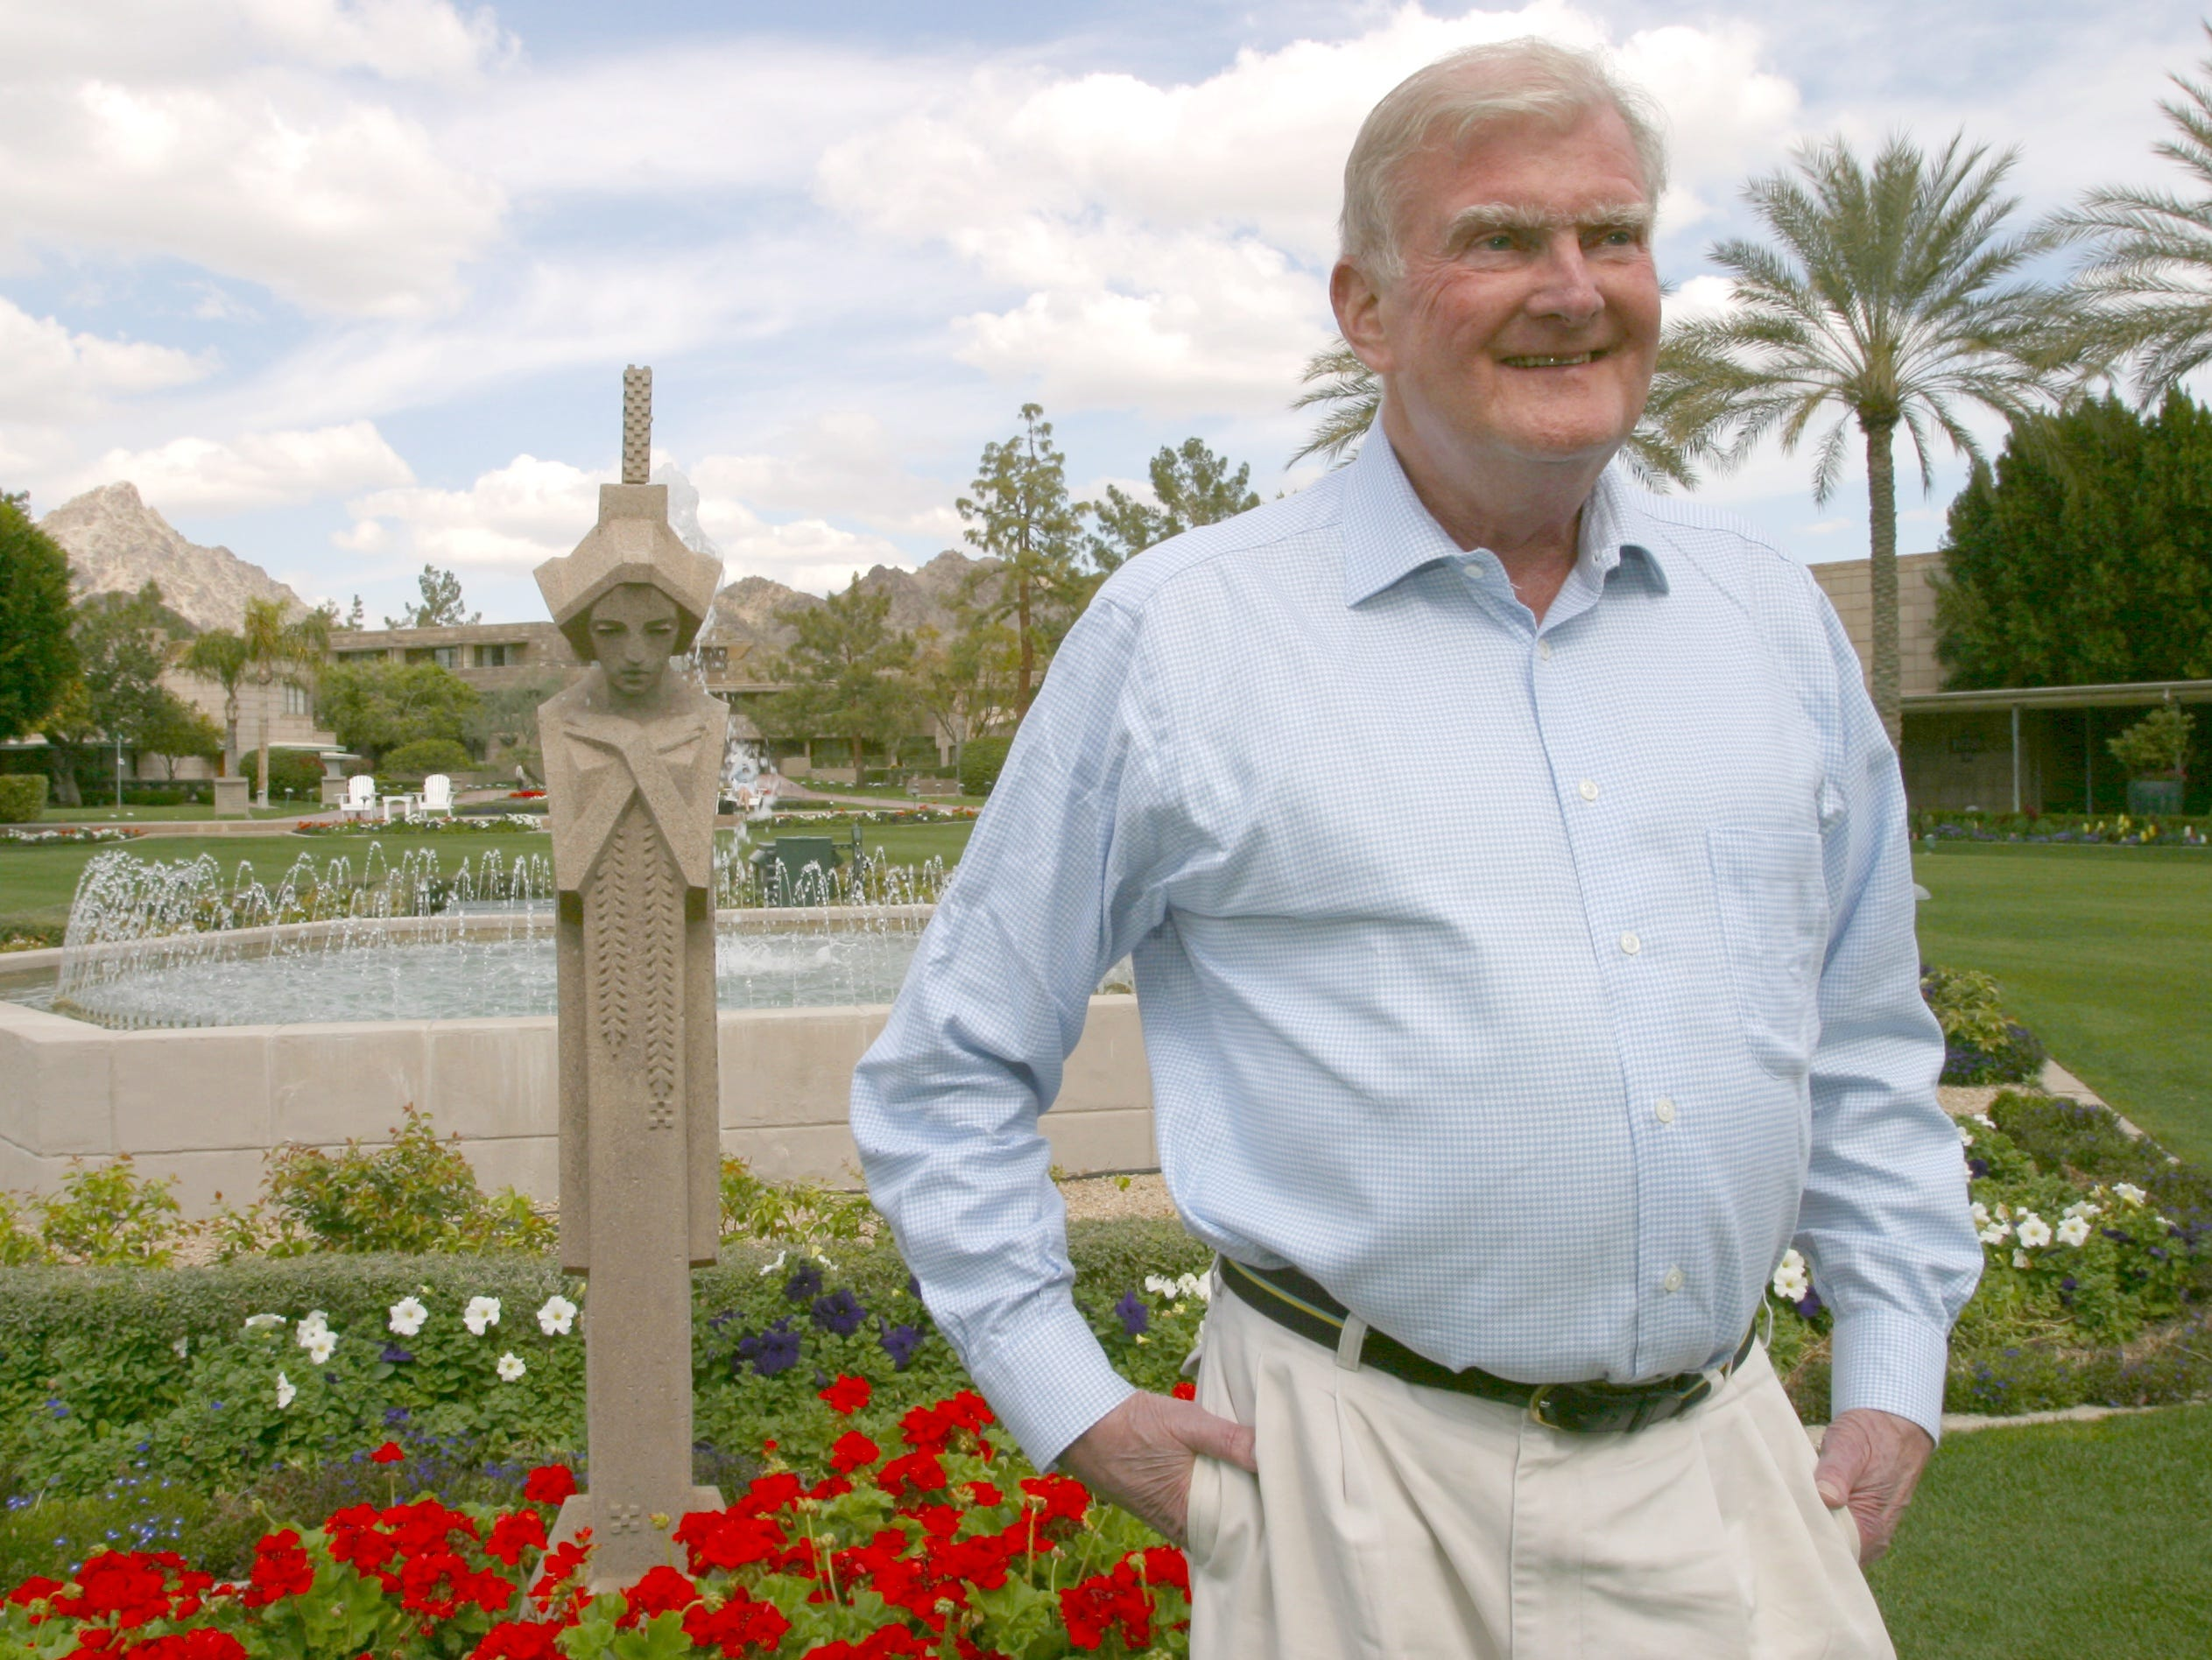 William Polk Carey is seen at the Arizona Biltmore in 2003, the year he donated $50 million to the business college at Arizona State University. His foundation in January 2019 donated $25 million more to the school,